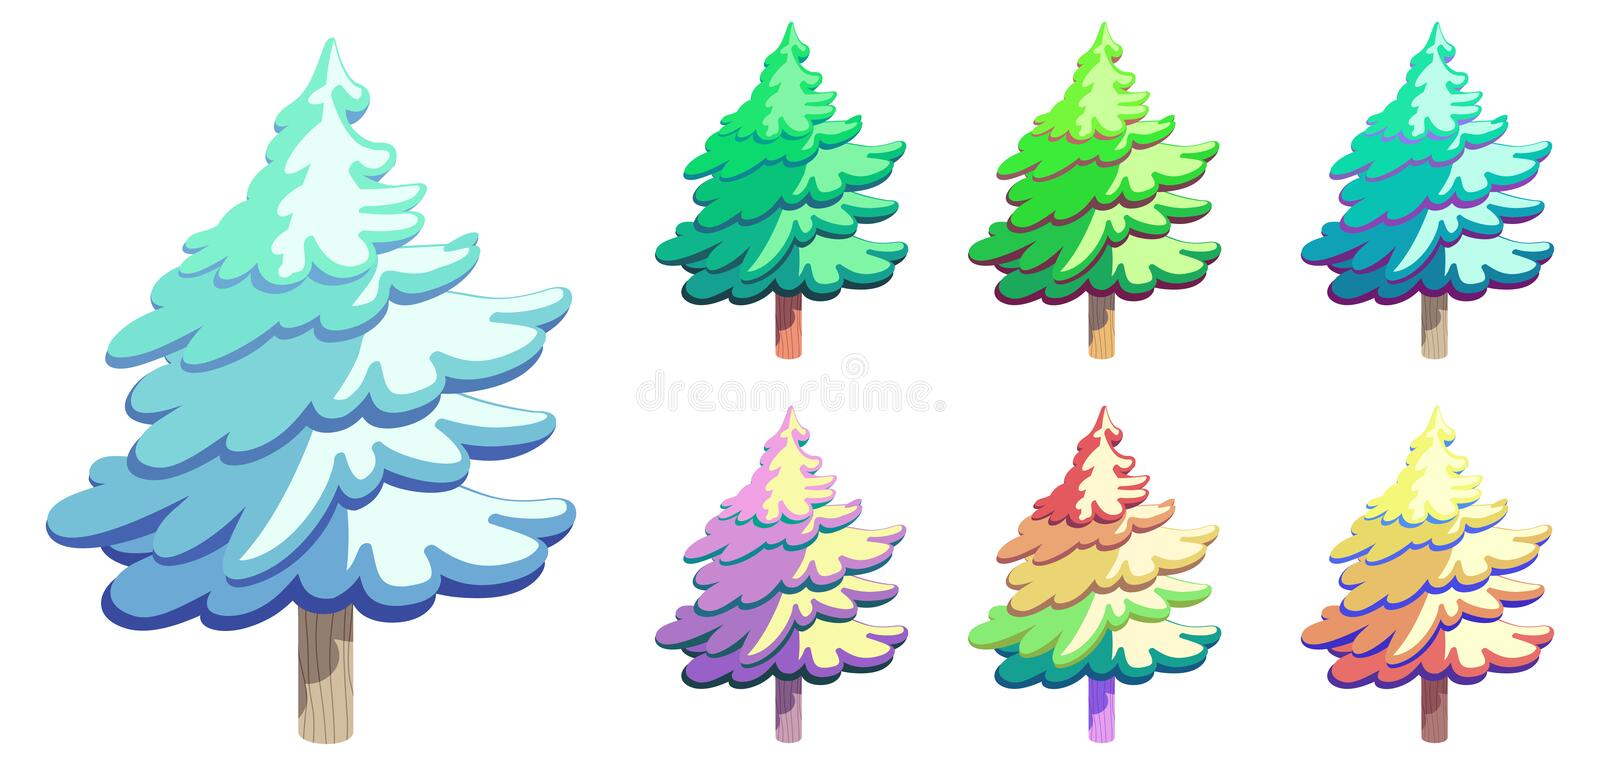 Vector Cartoon style Tree royalty free stock images